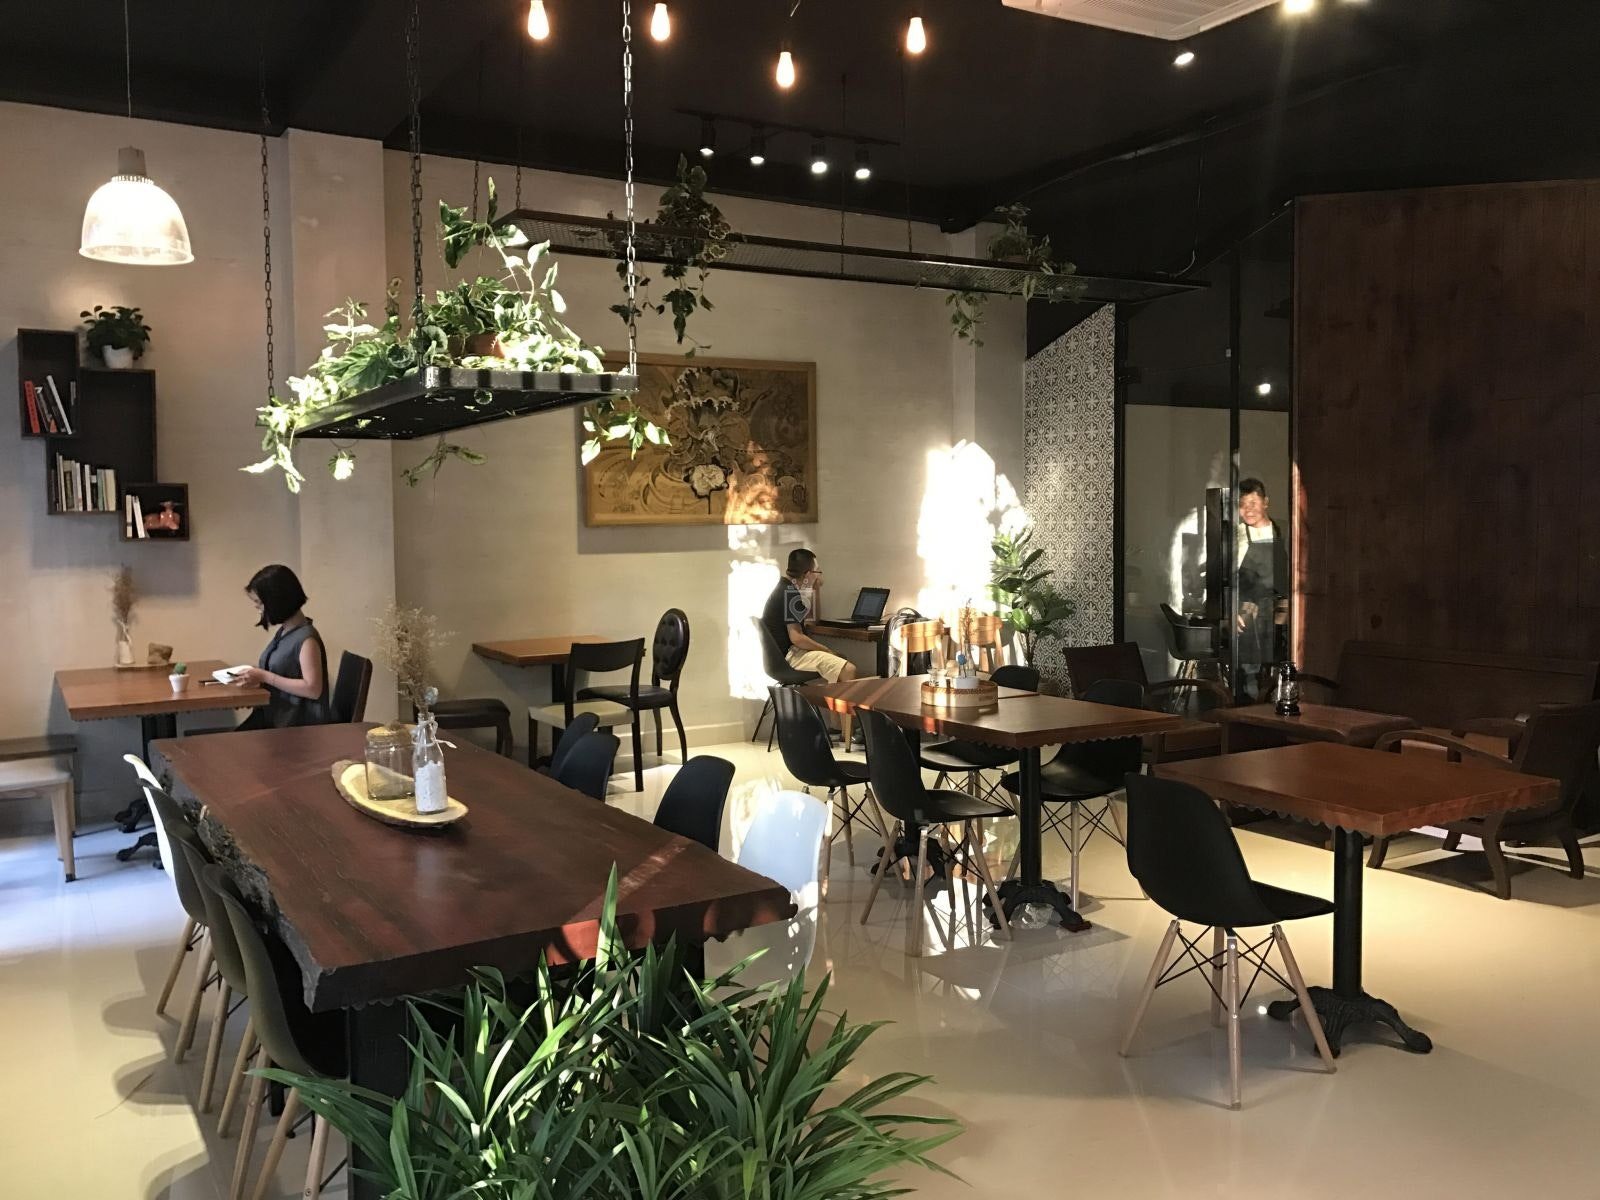 d36332bed Artfolio - Coworking Cafe, Ho Chi Minh City - Read Reviews & Book Online